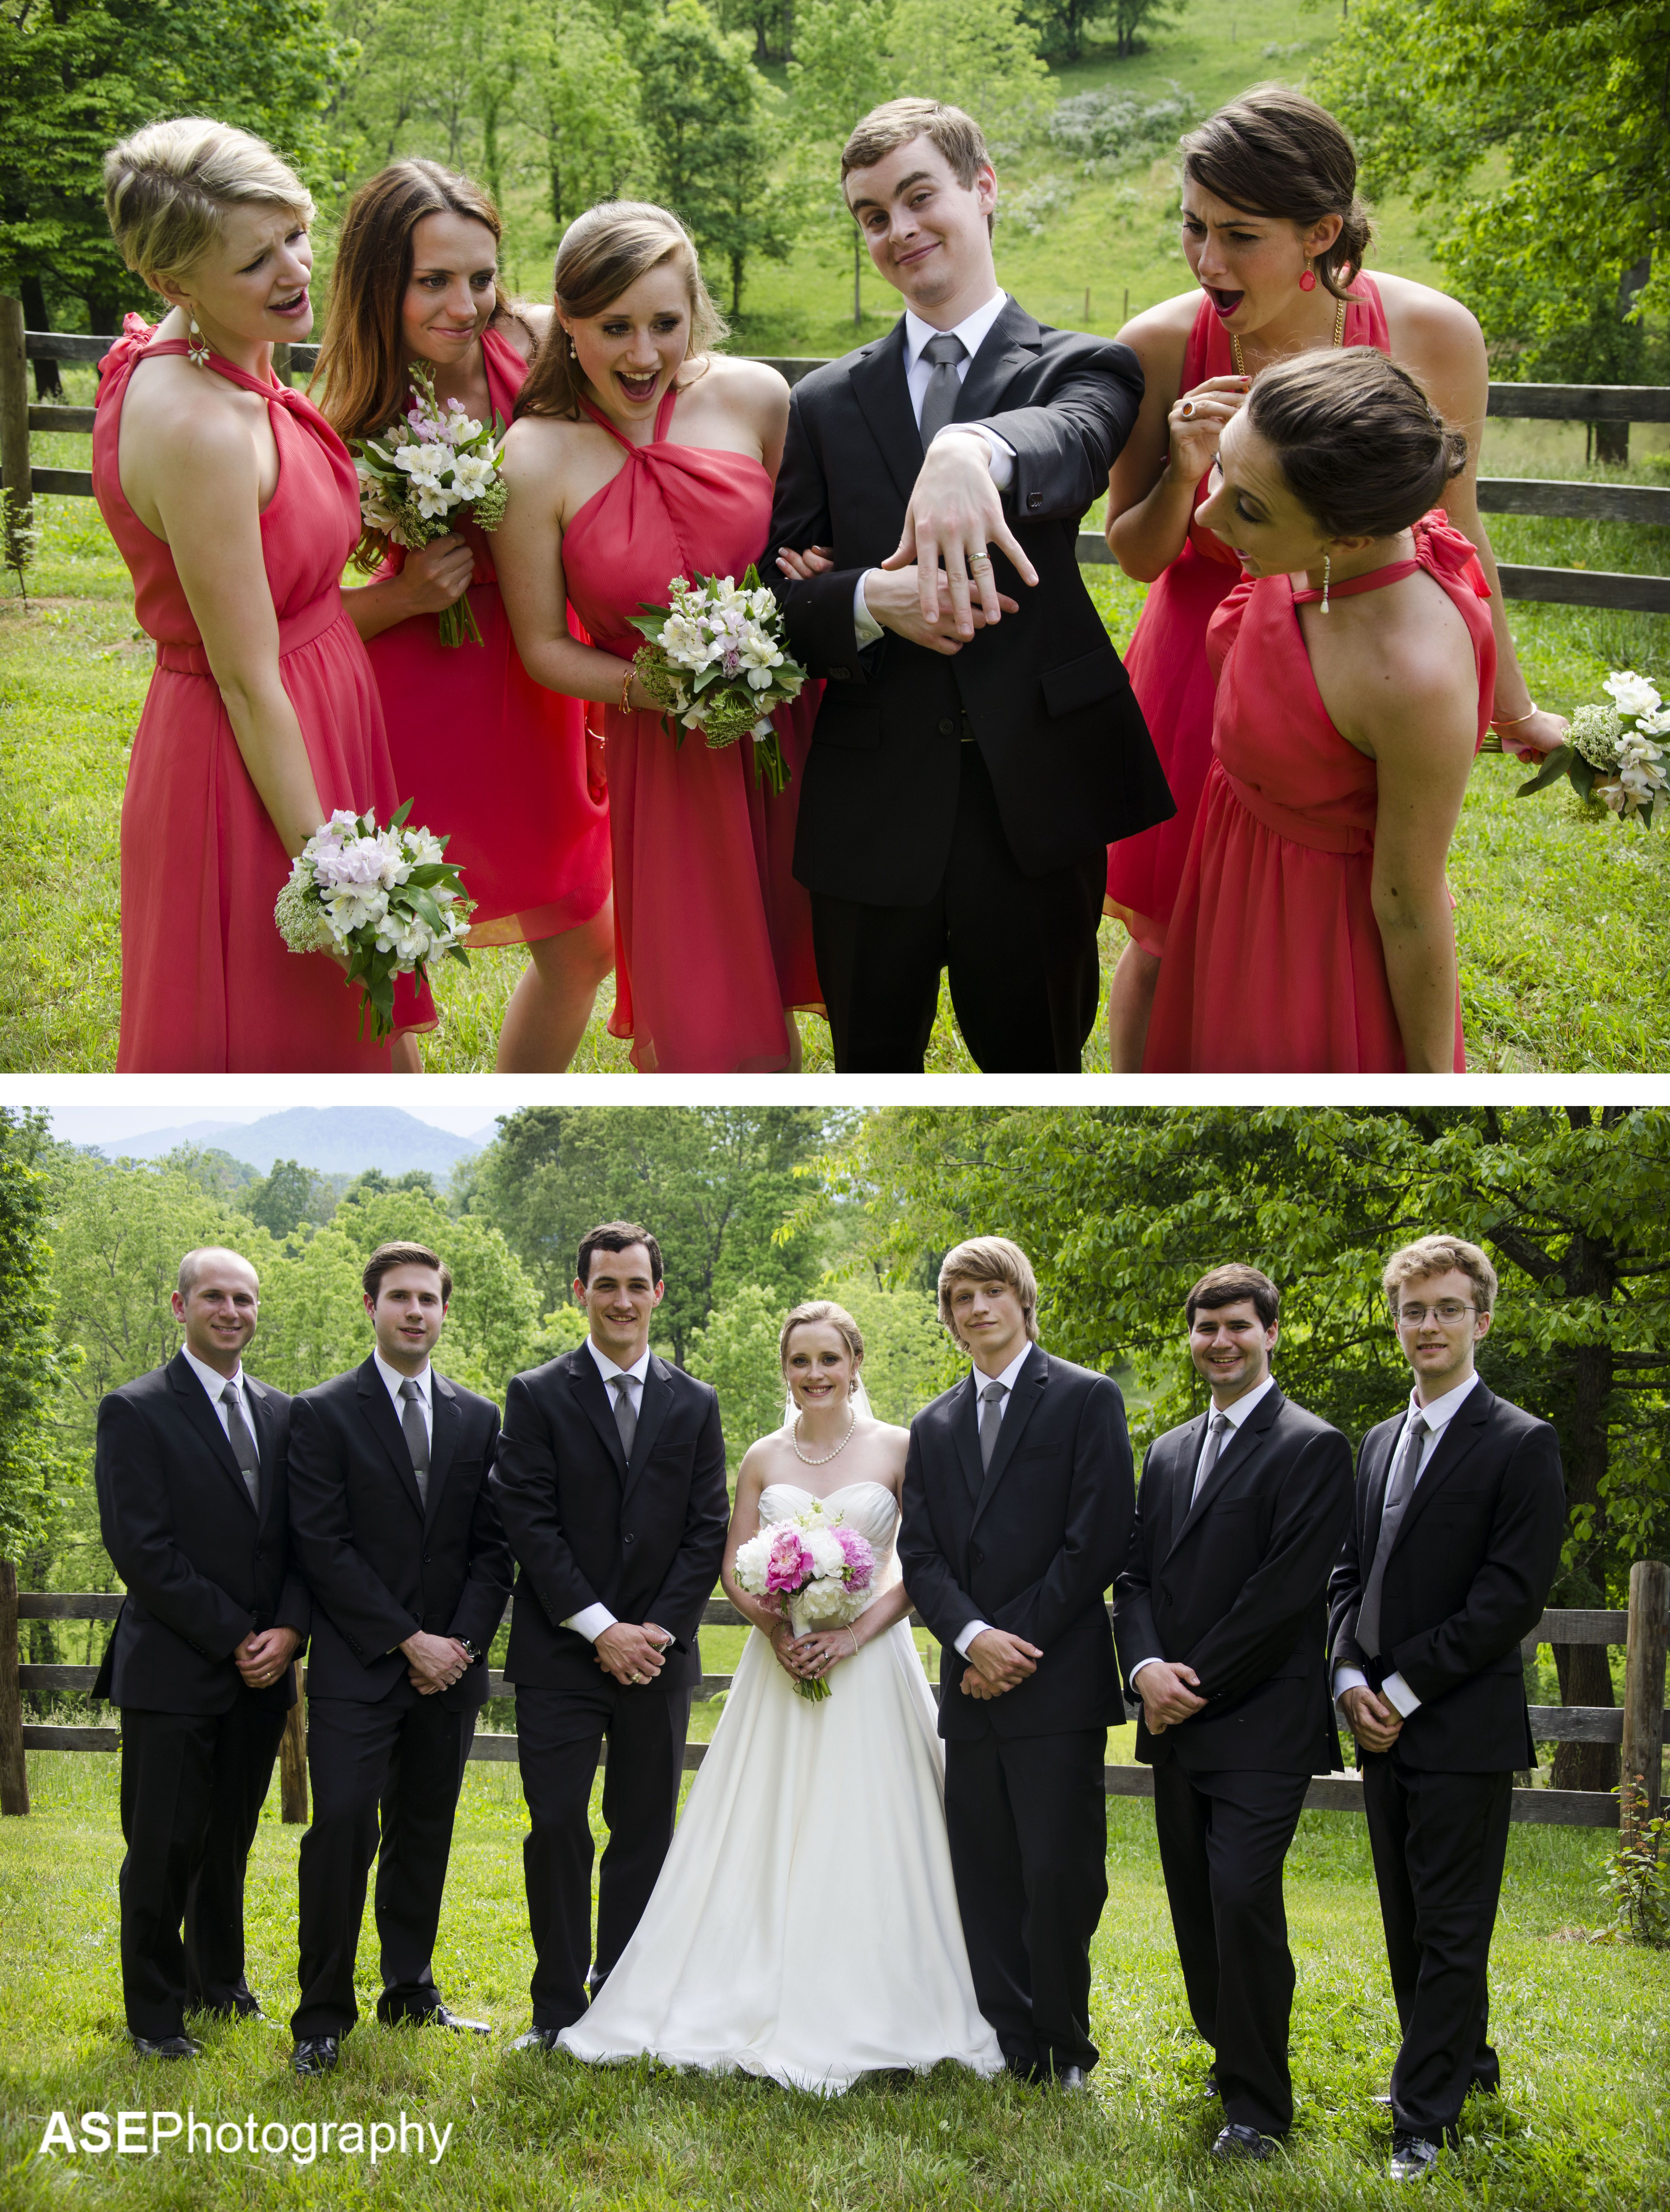 Funny Wedding Gifts For Groomsmen : groom and groomsmen funny wedding photography funny weddings wedding ...